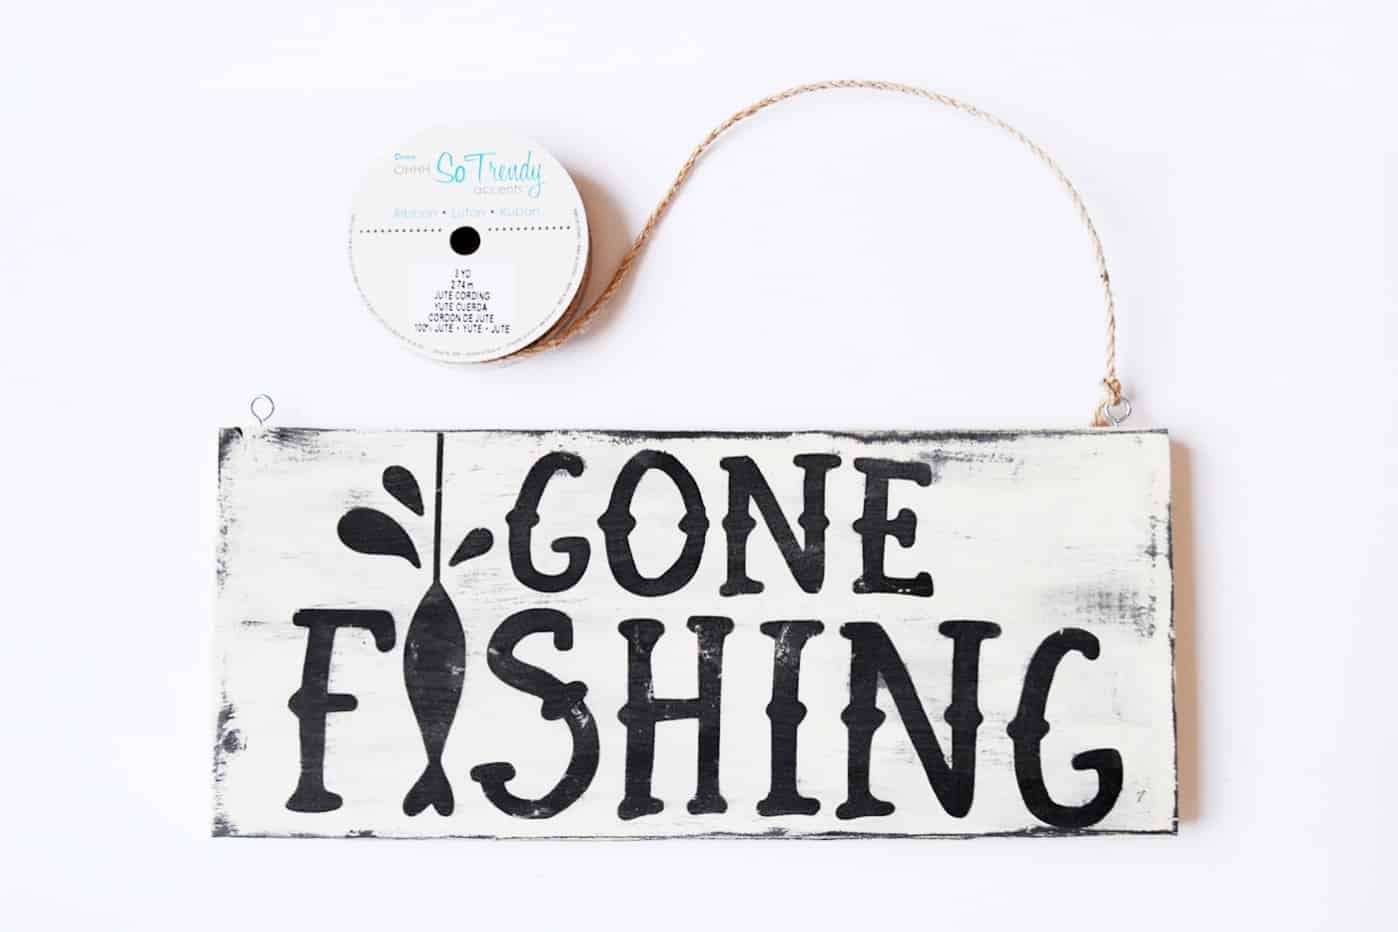 Tying jute to a gone fishing sign